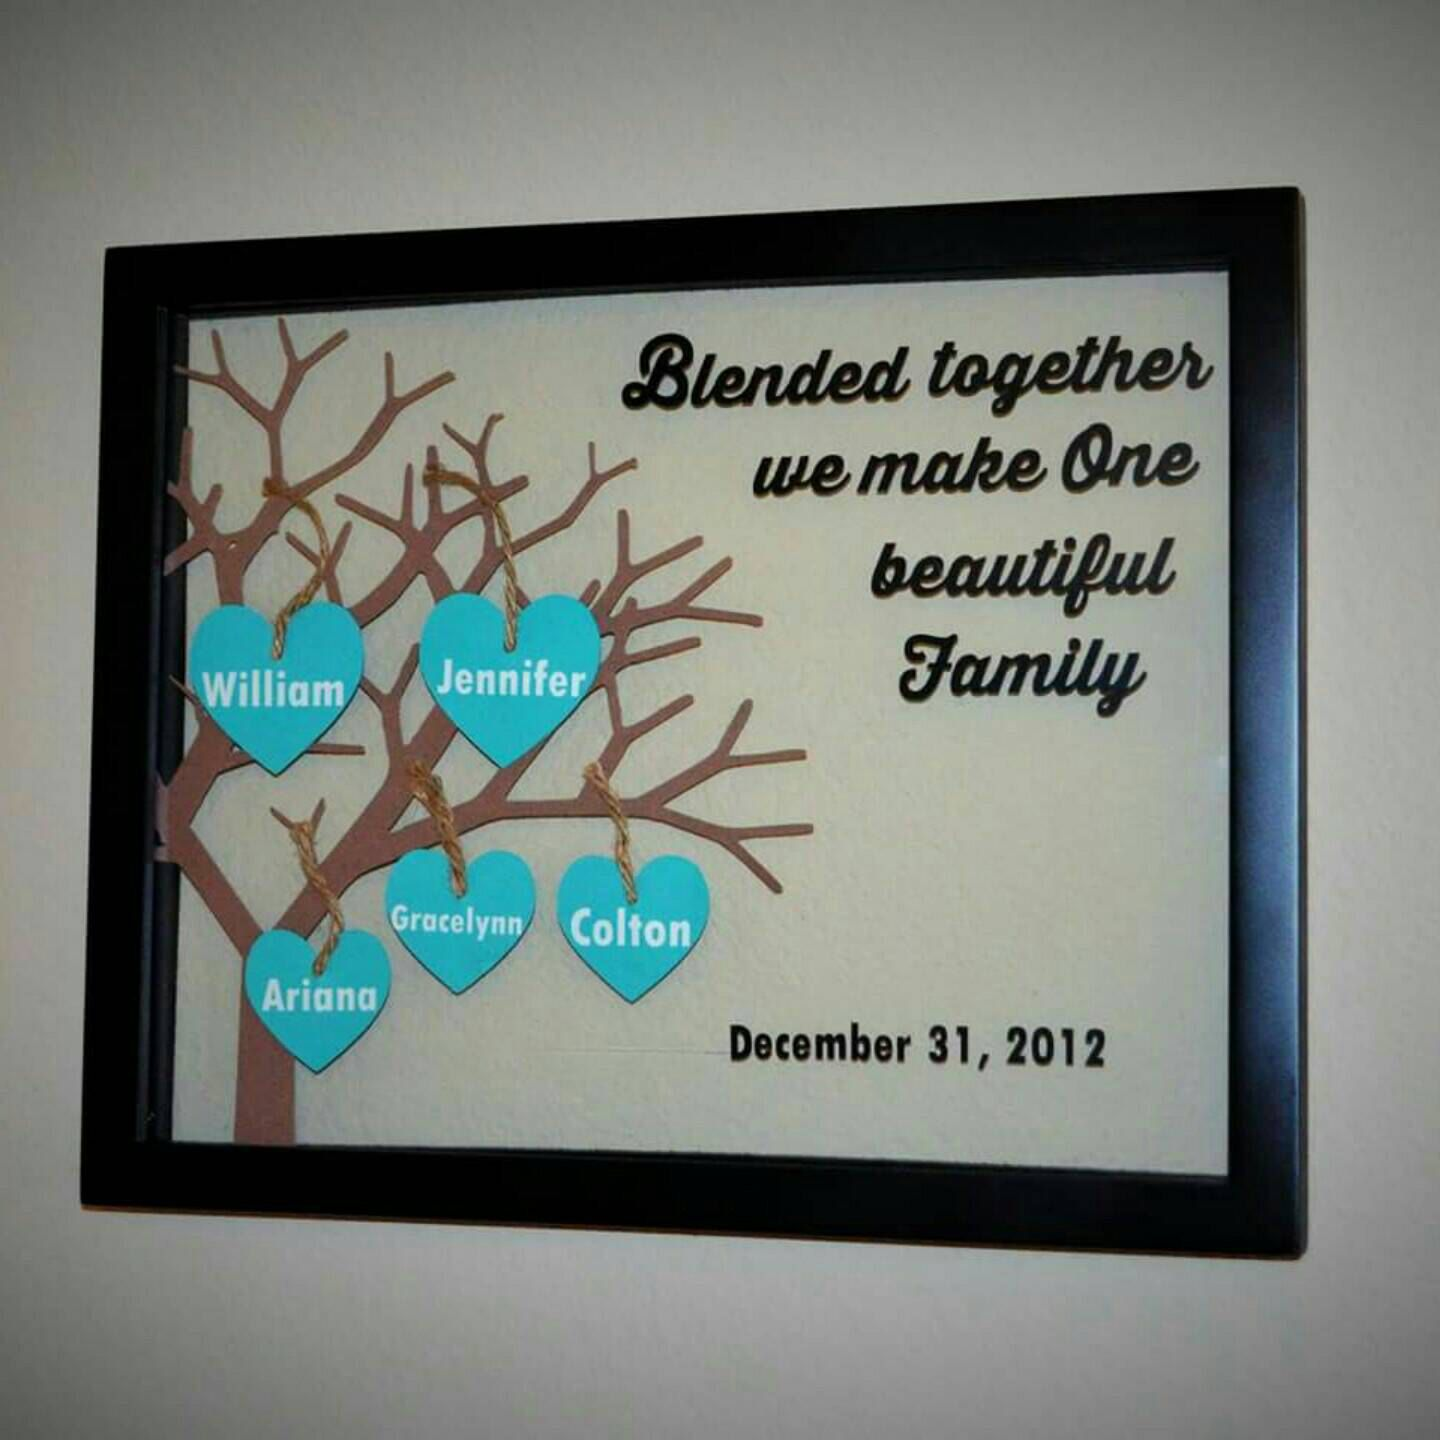 Family Picture Ideas For Wedding: Blended Family, Personalized Floating Frame. A Heartfelt